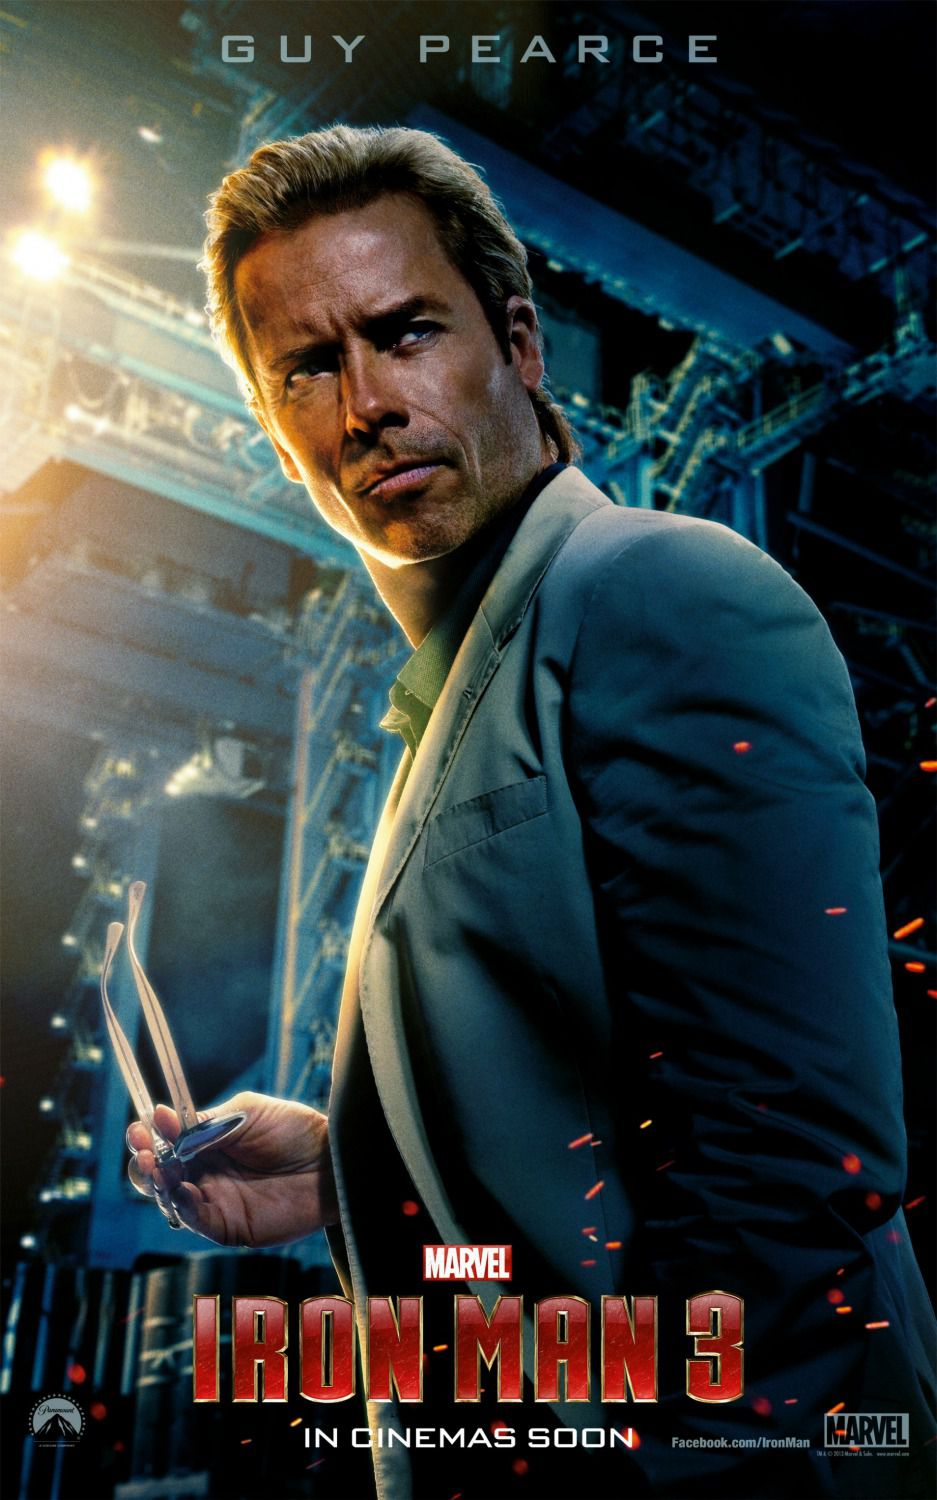 Ironman 3 -  Aldrich Killian (Guy Pearce)